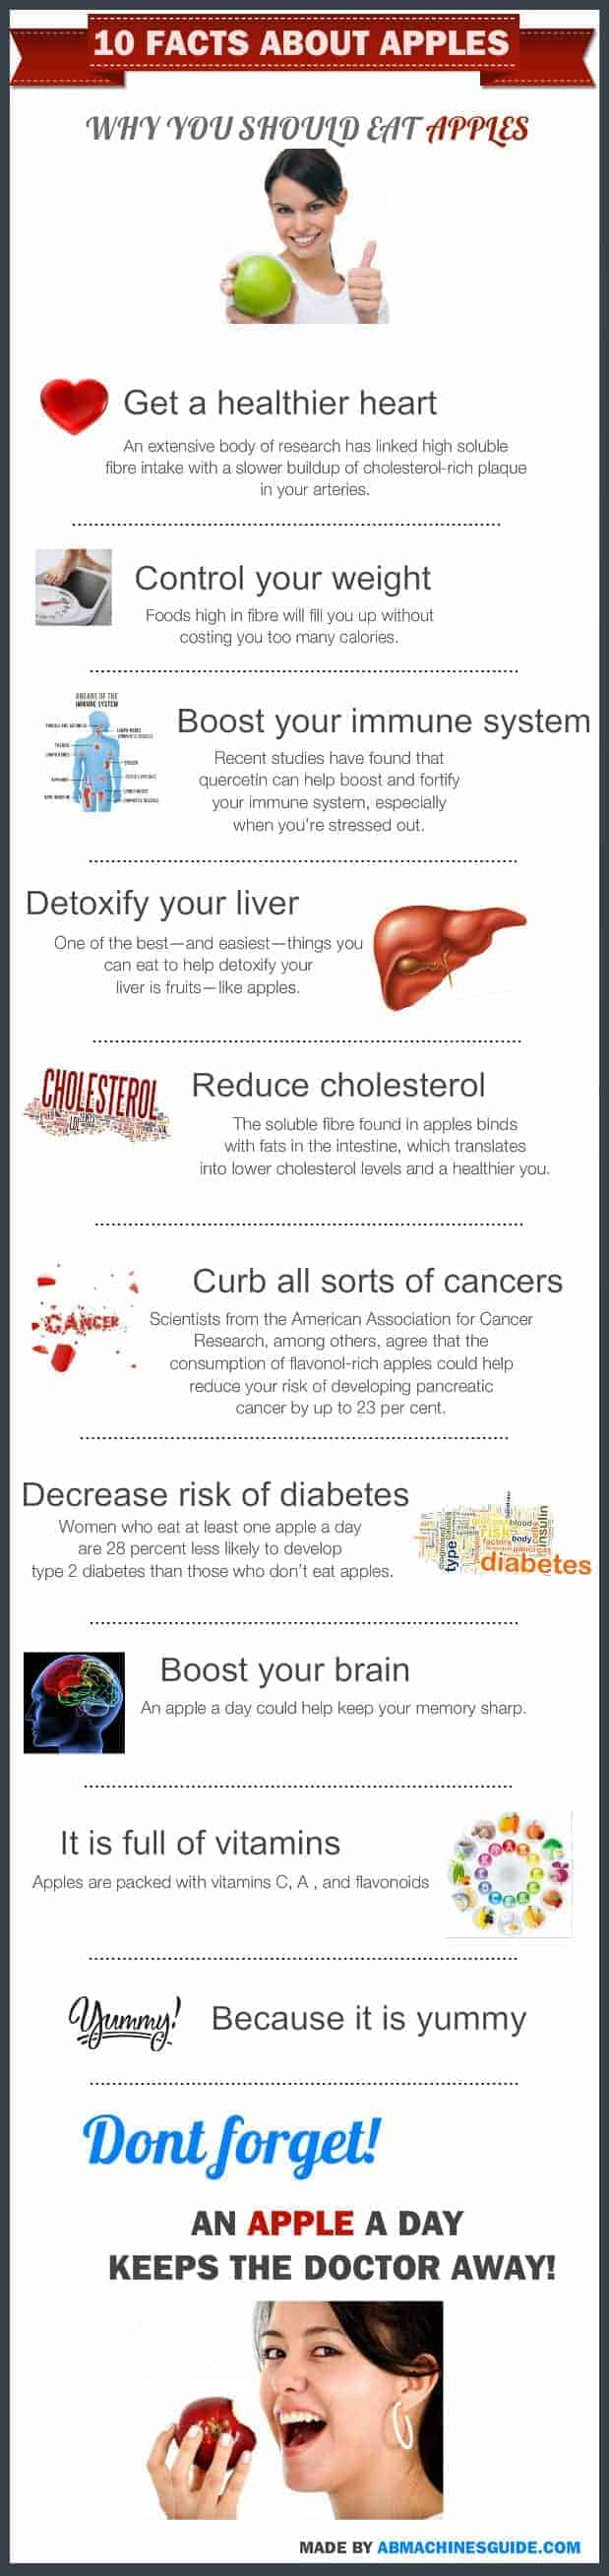 eating-apples-benefits